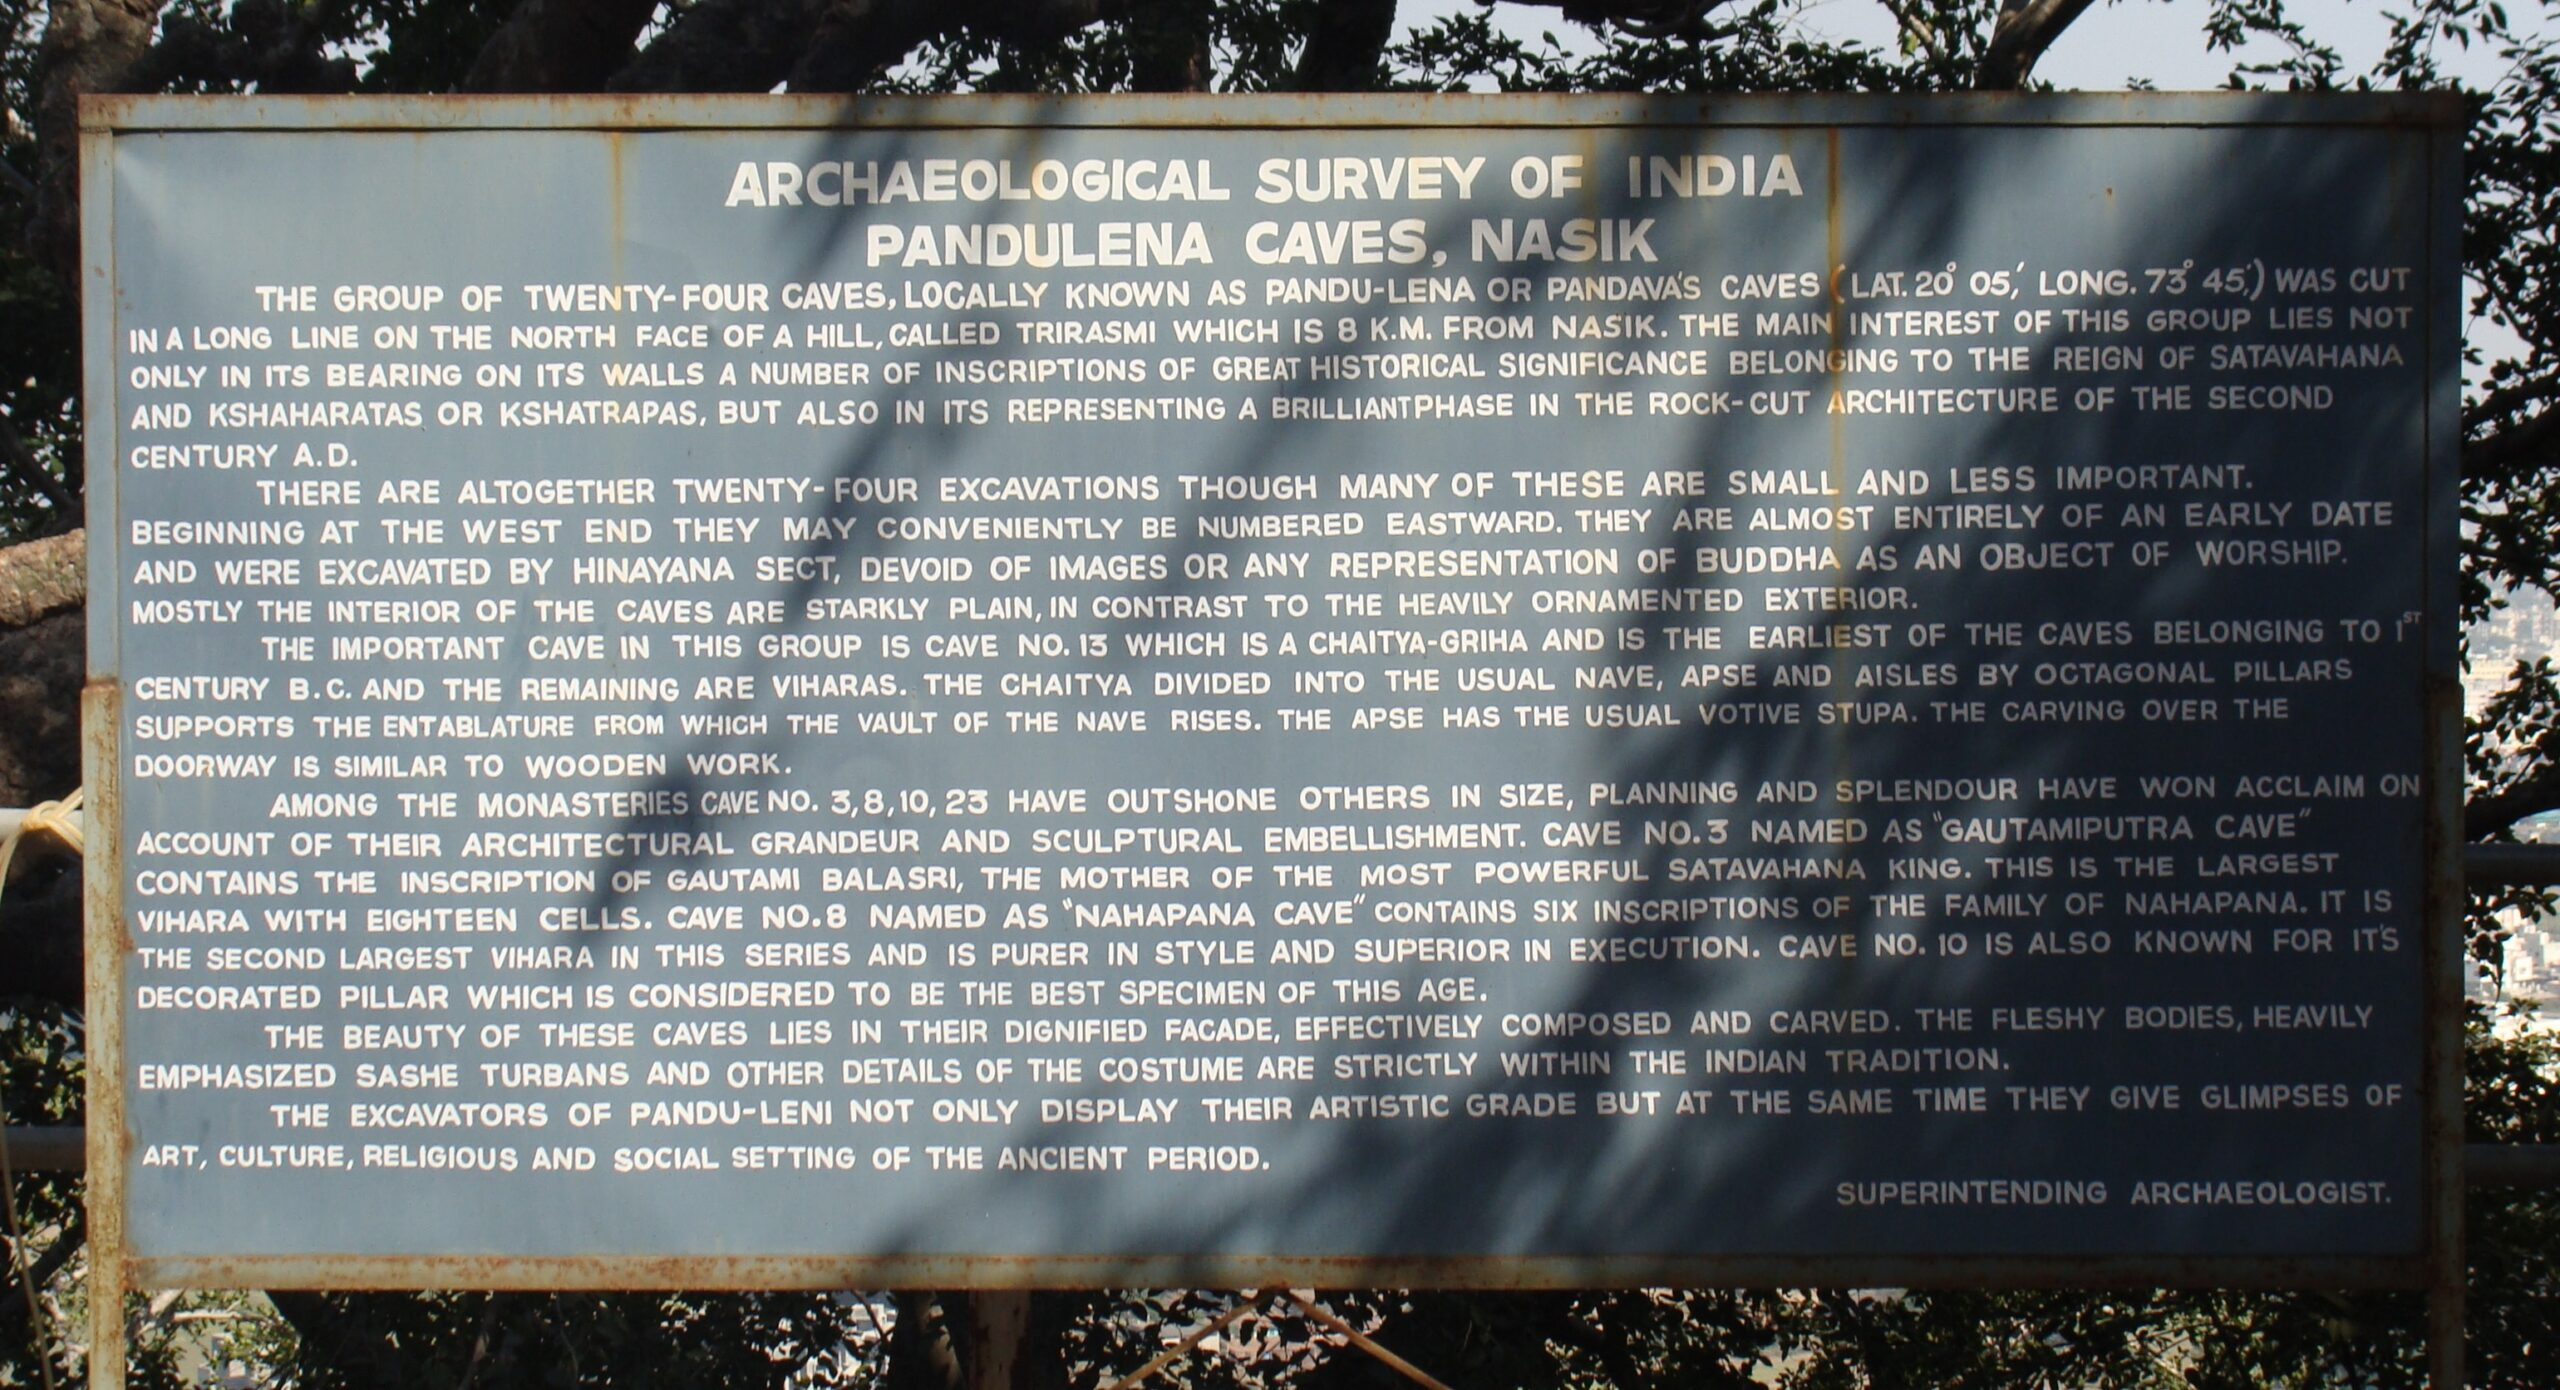 History of Pandulena Caves (Nashik, Maharashtra, India)